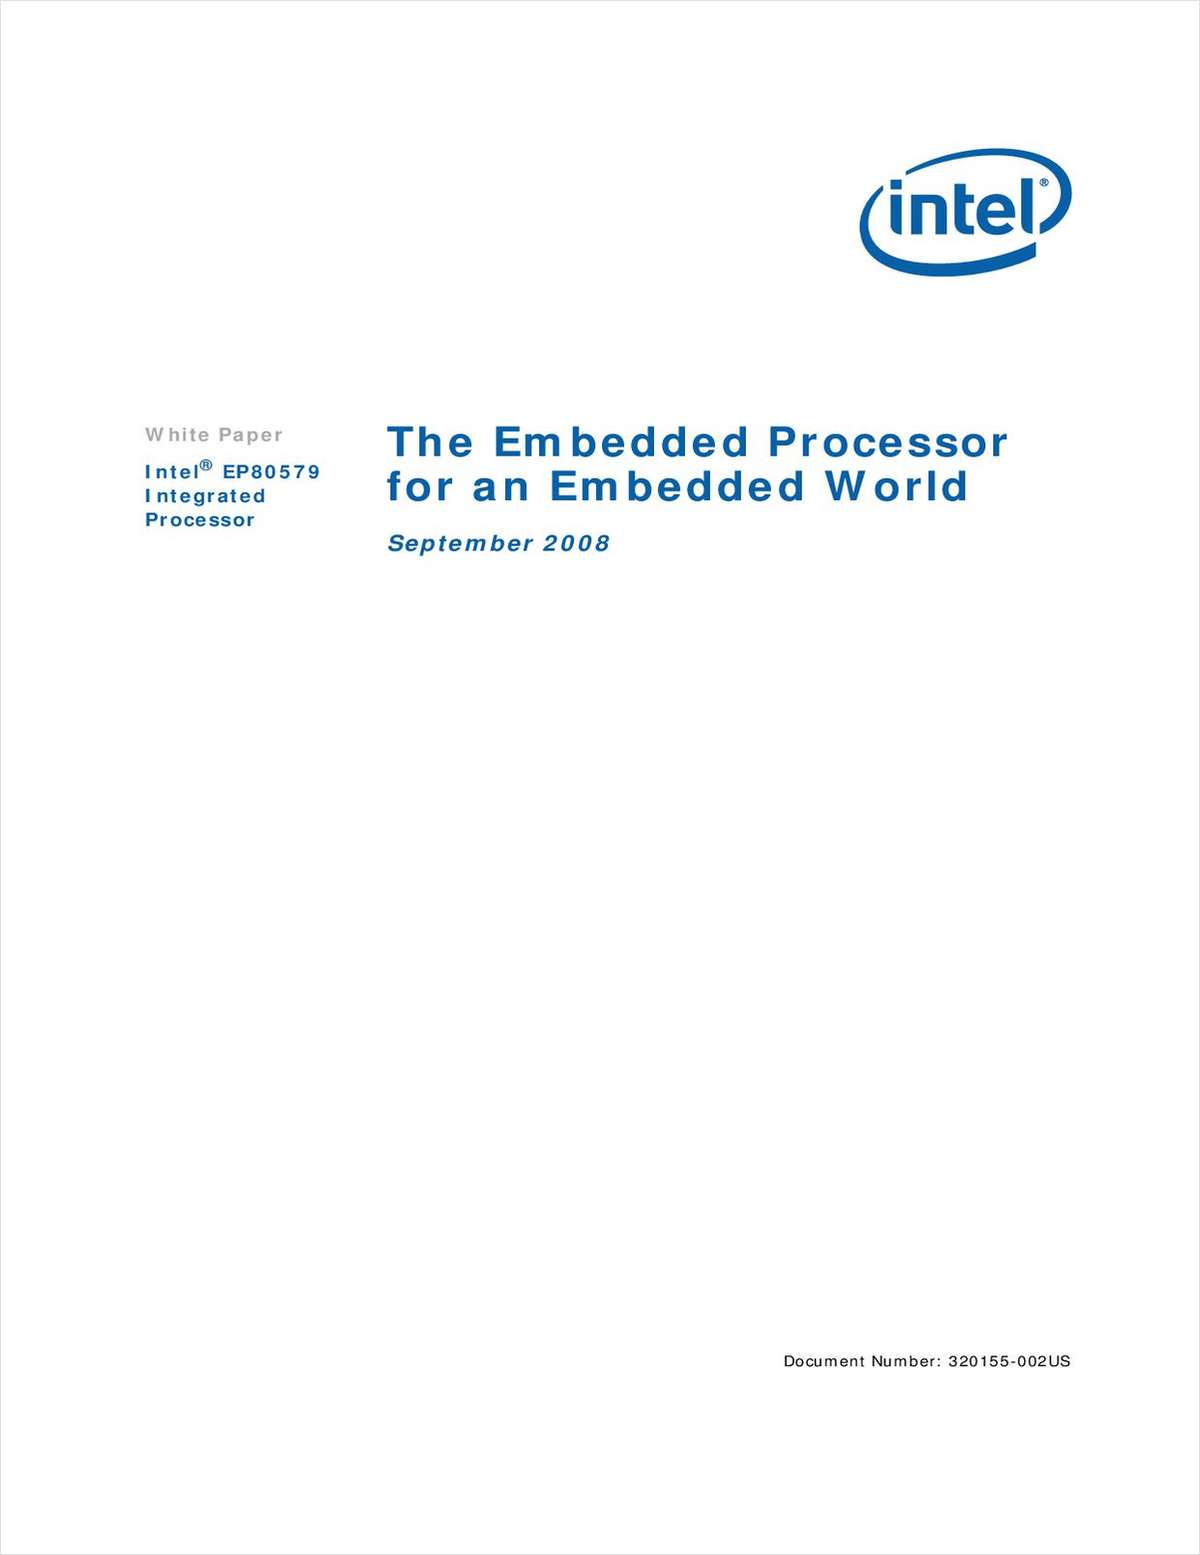 The Embedded Processor for an Embedded World